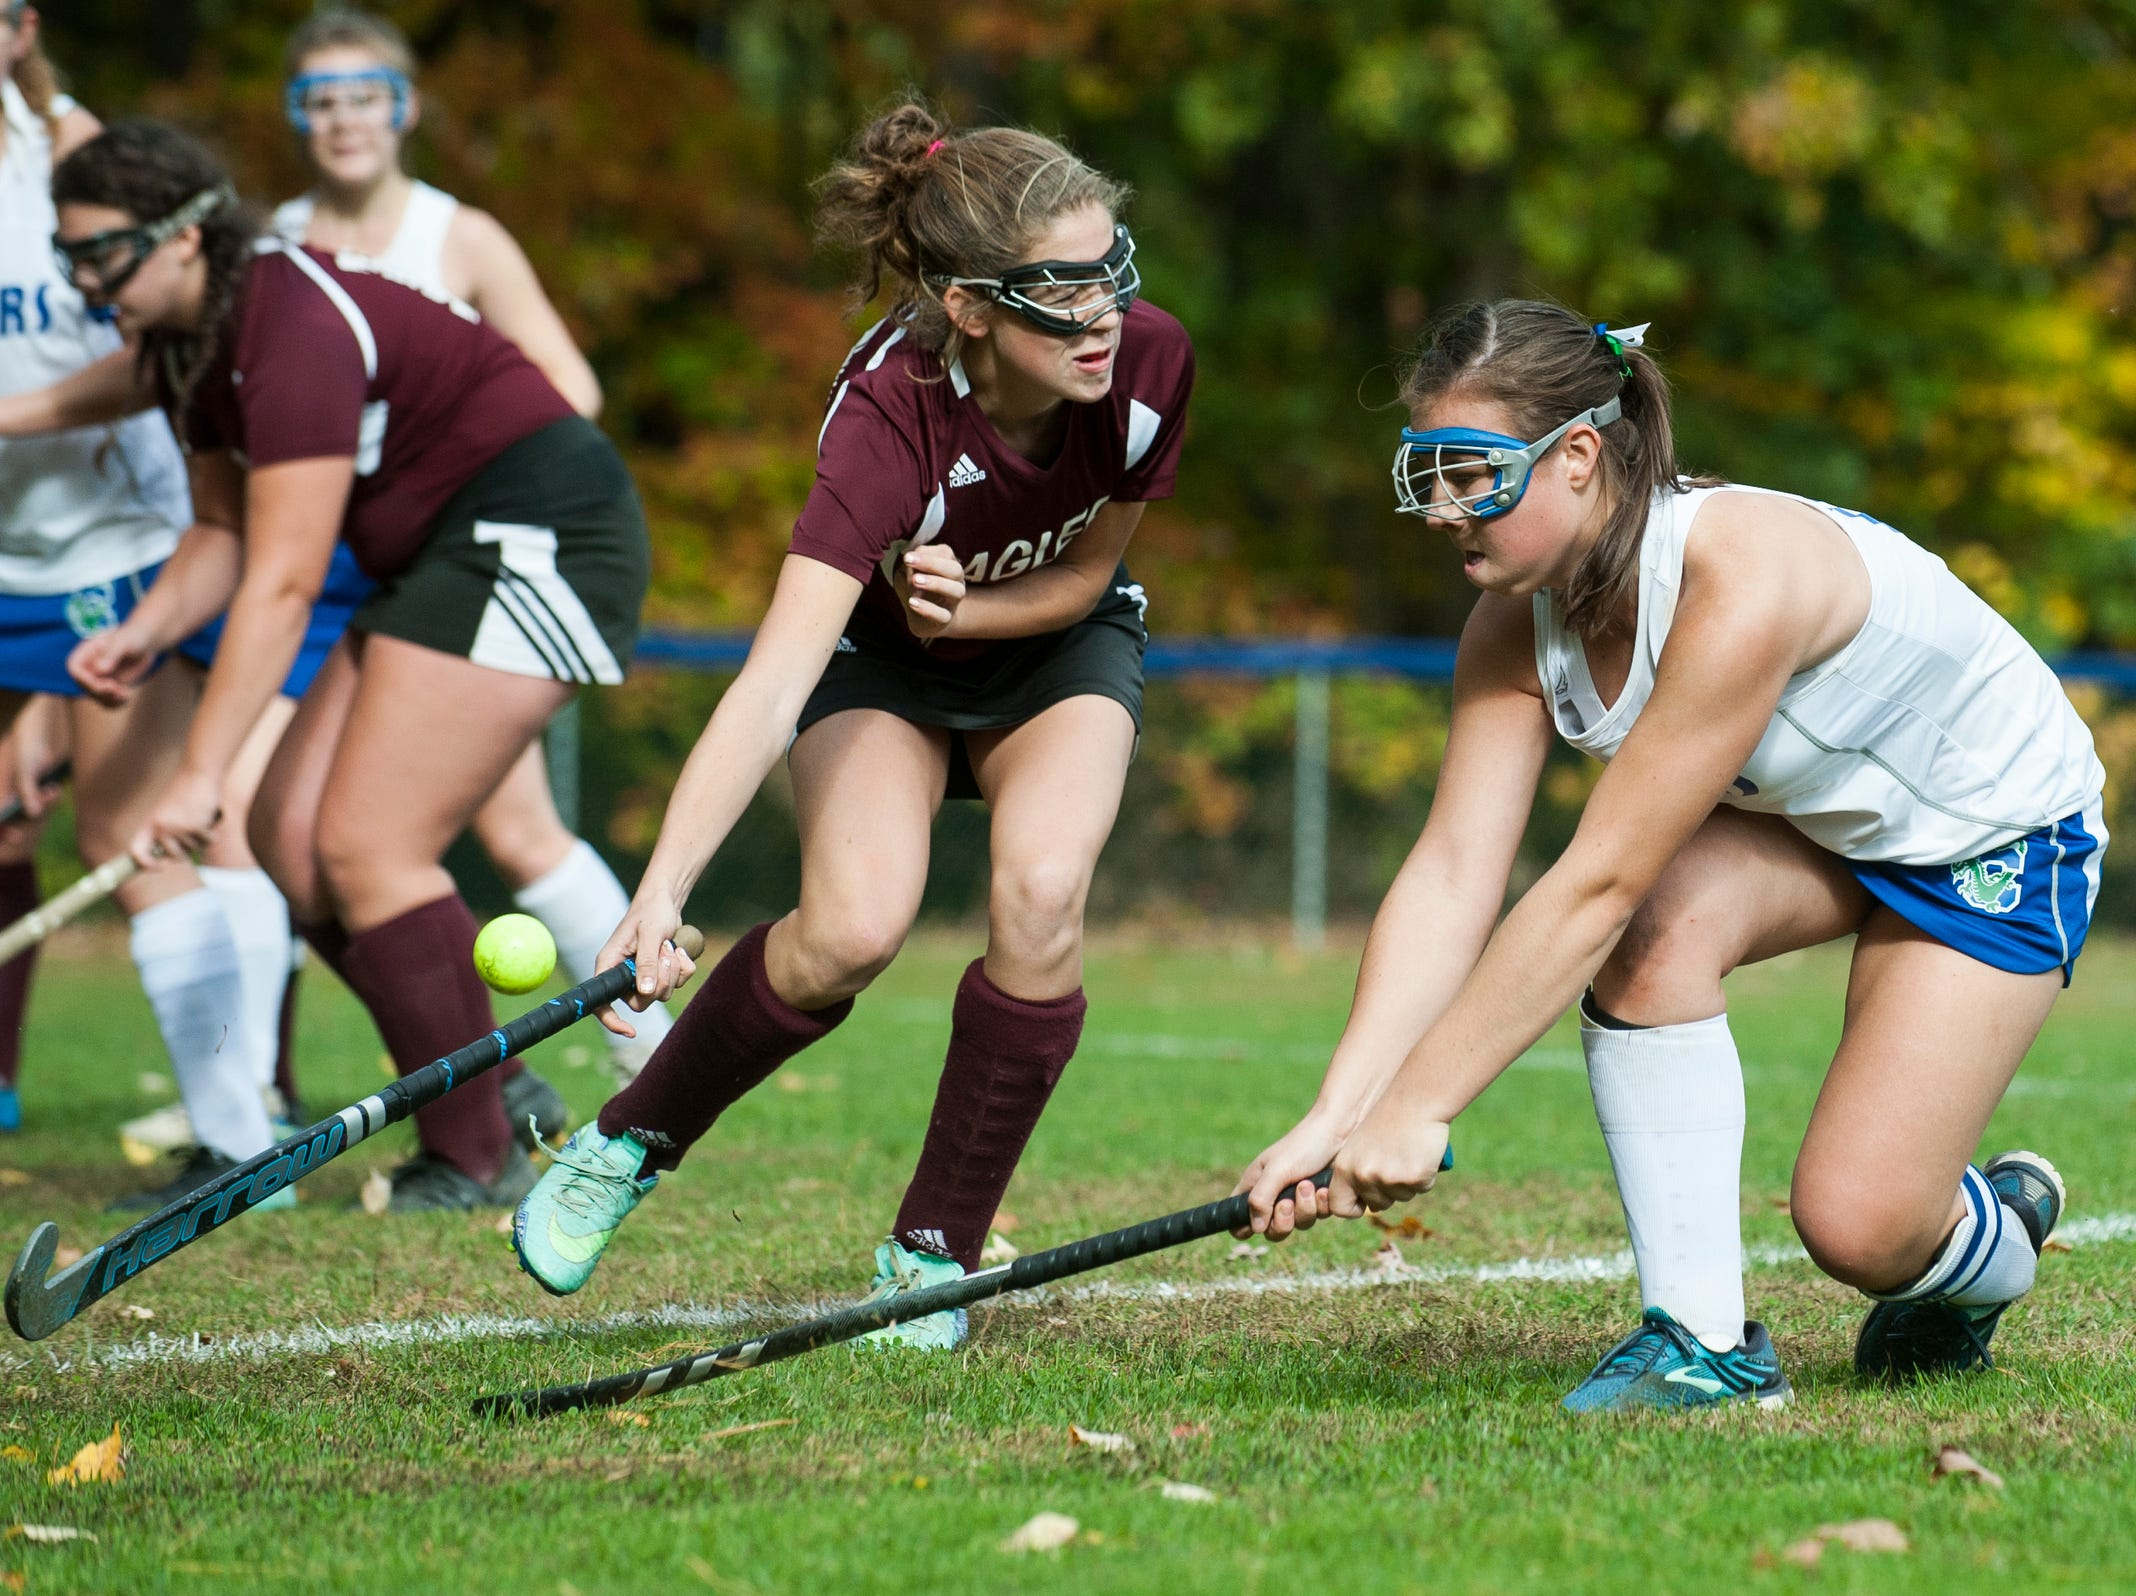 Colchester's Meg Lehouiller (17) hits the ball past Mt. Abraham's Ava Konczal (10) during the field hockey game between Mount Abraham and Colchester at Colchester High School on Saturday morning October 20, 2018 in Colchester.